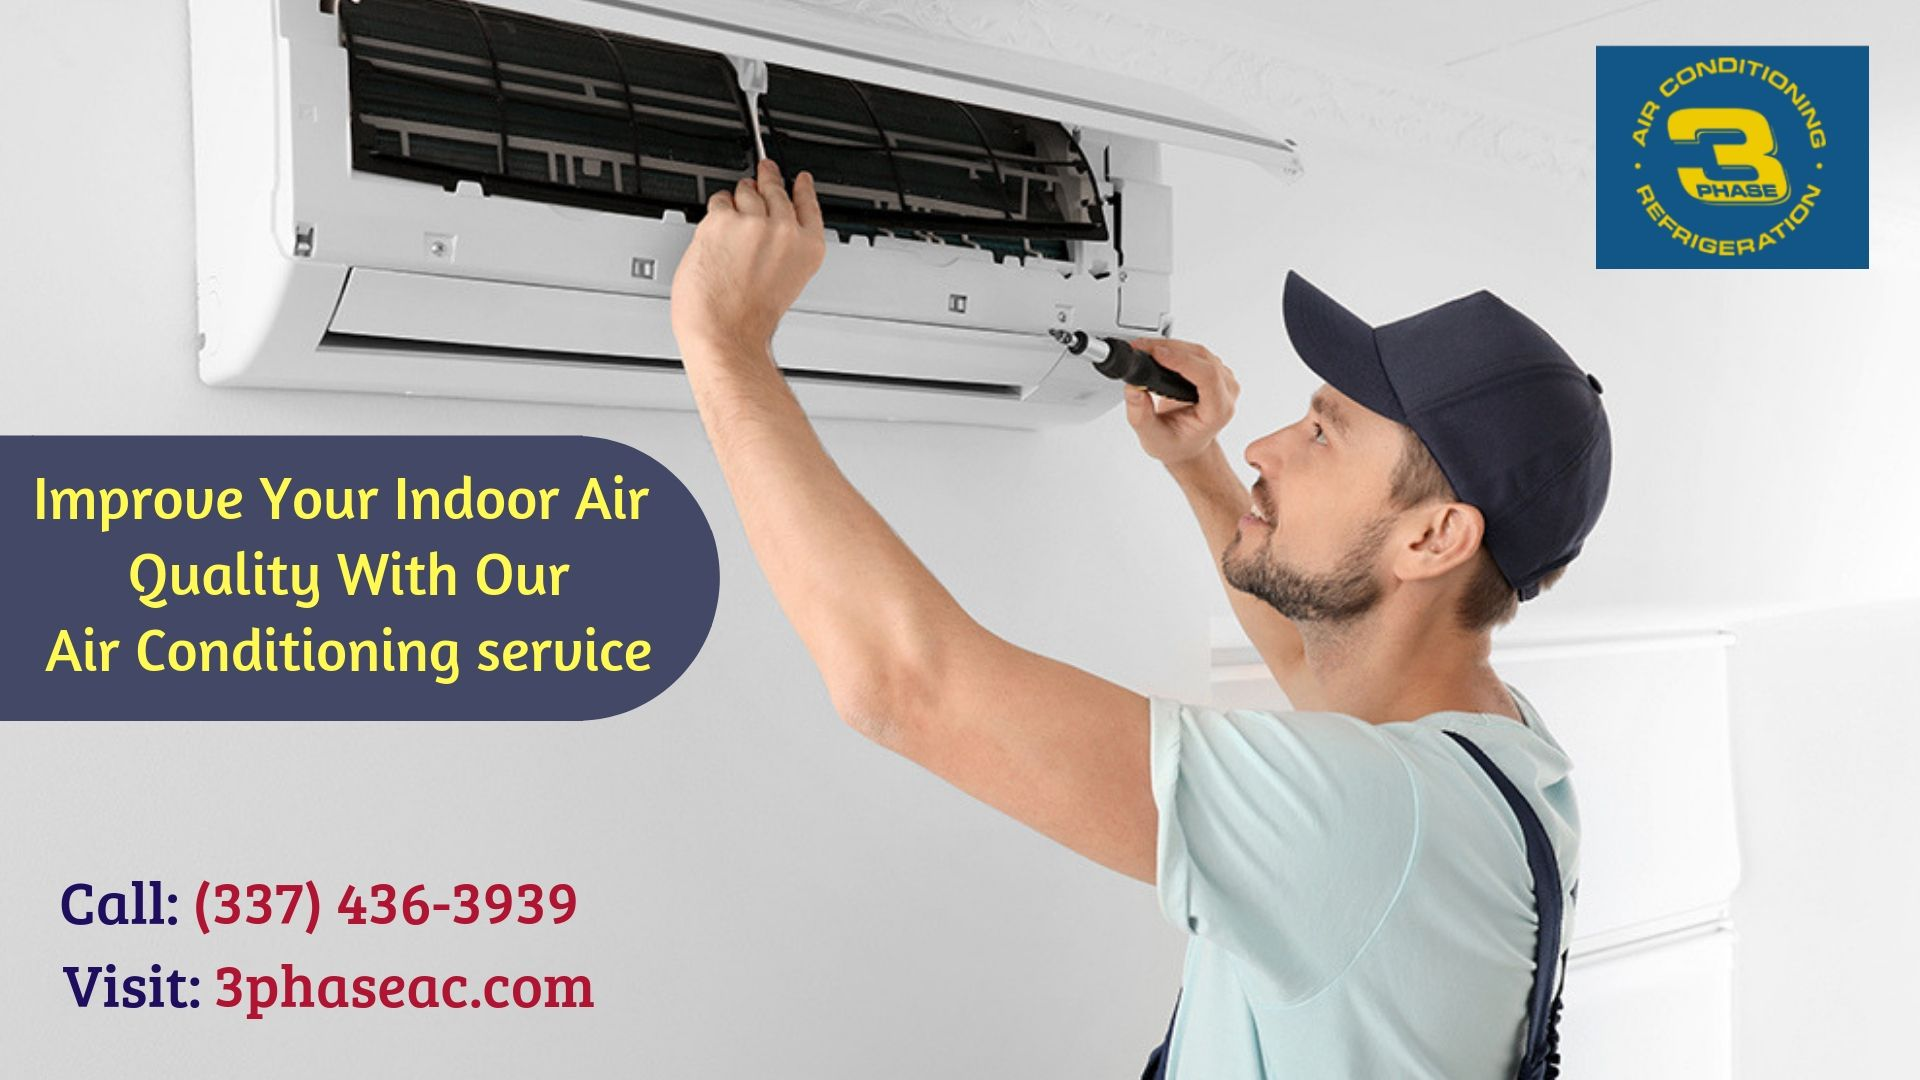 Having Thought To Get Quality Air Conditioning Service At Three